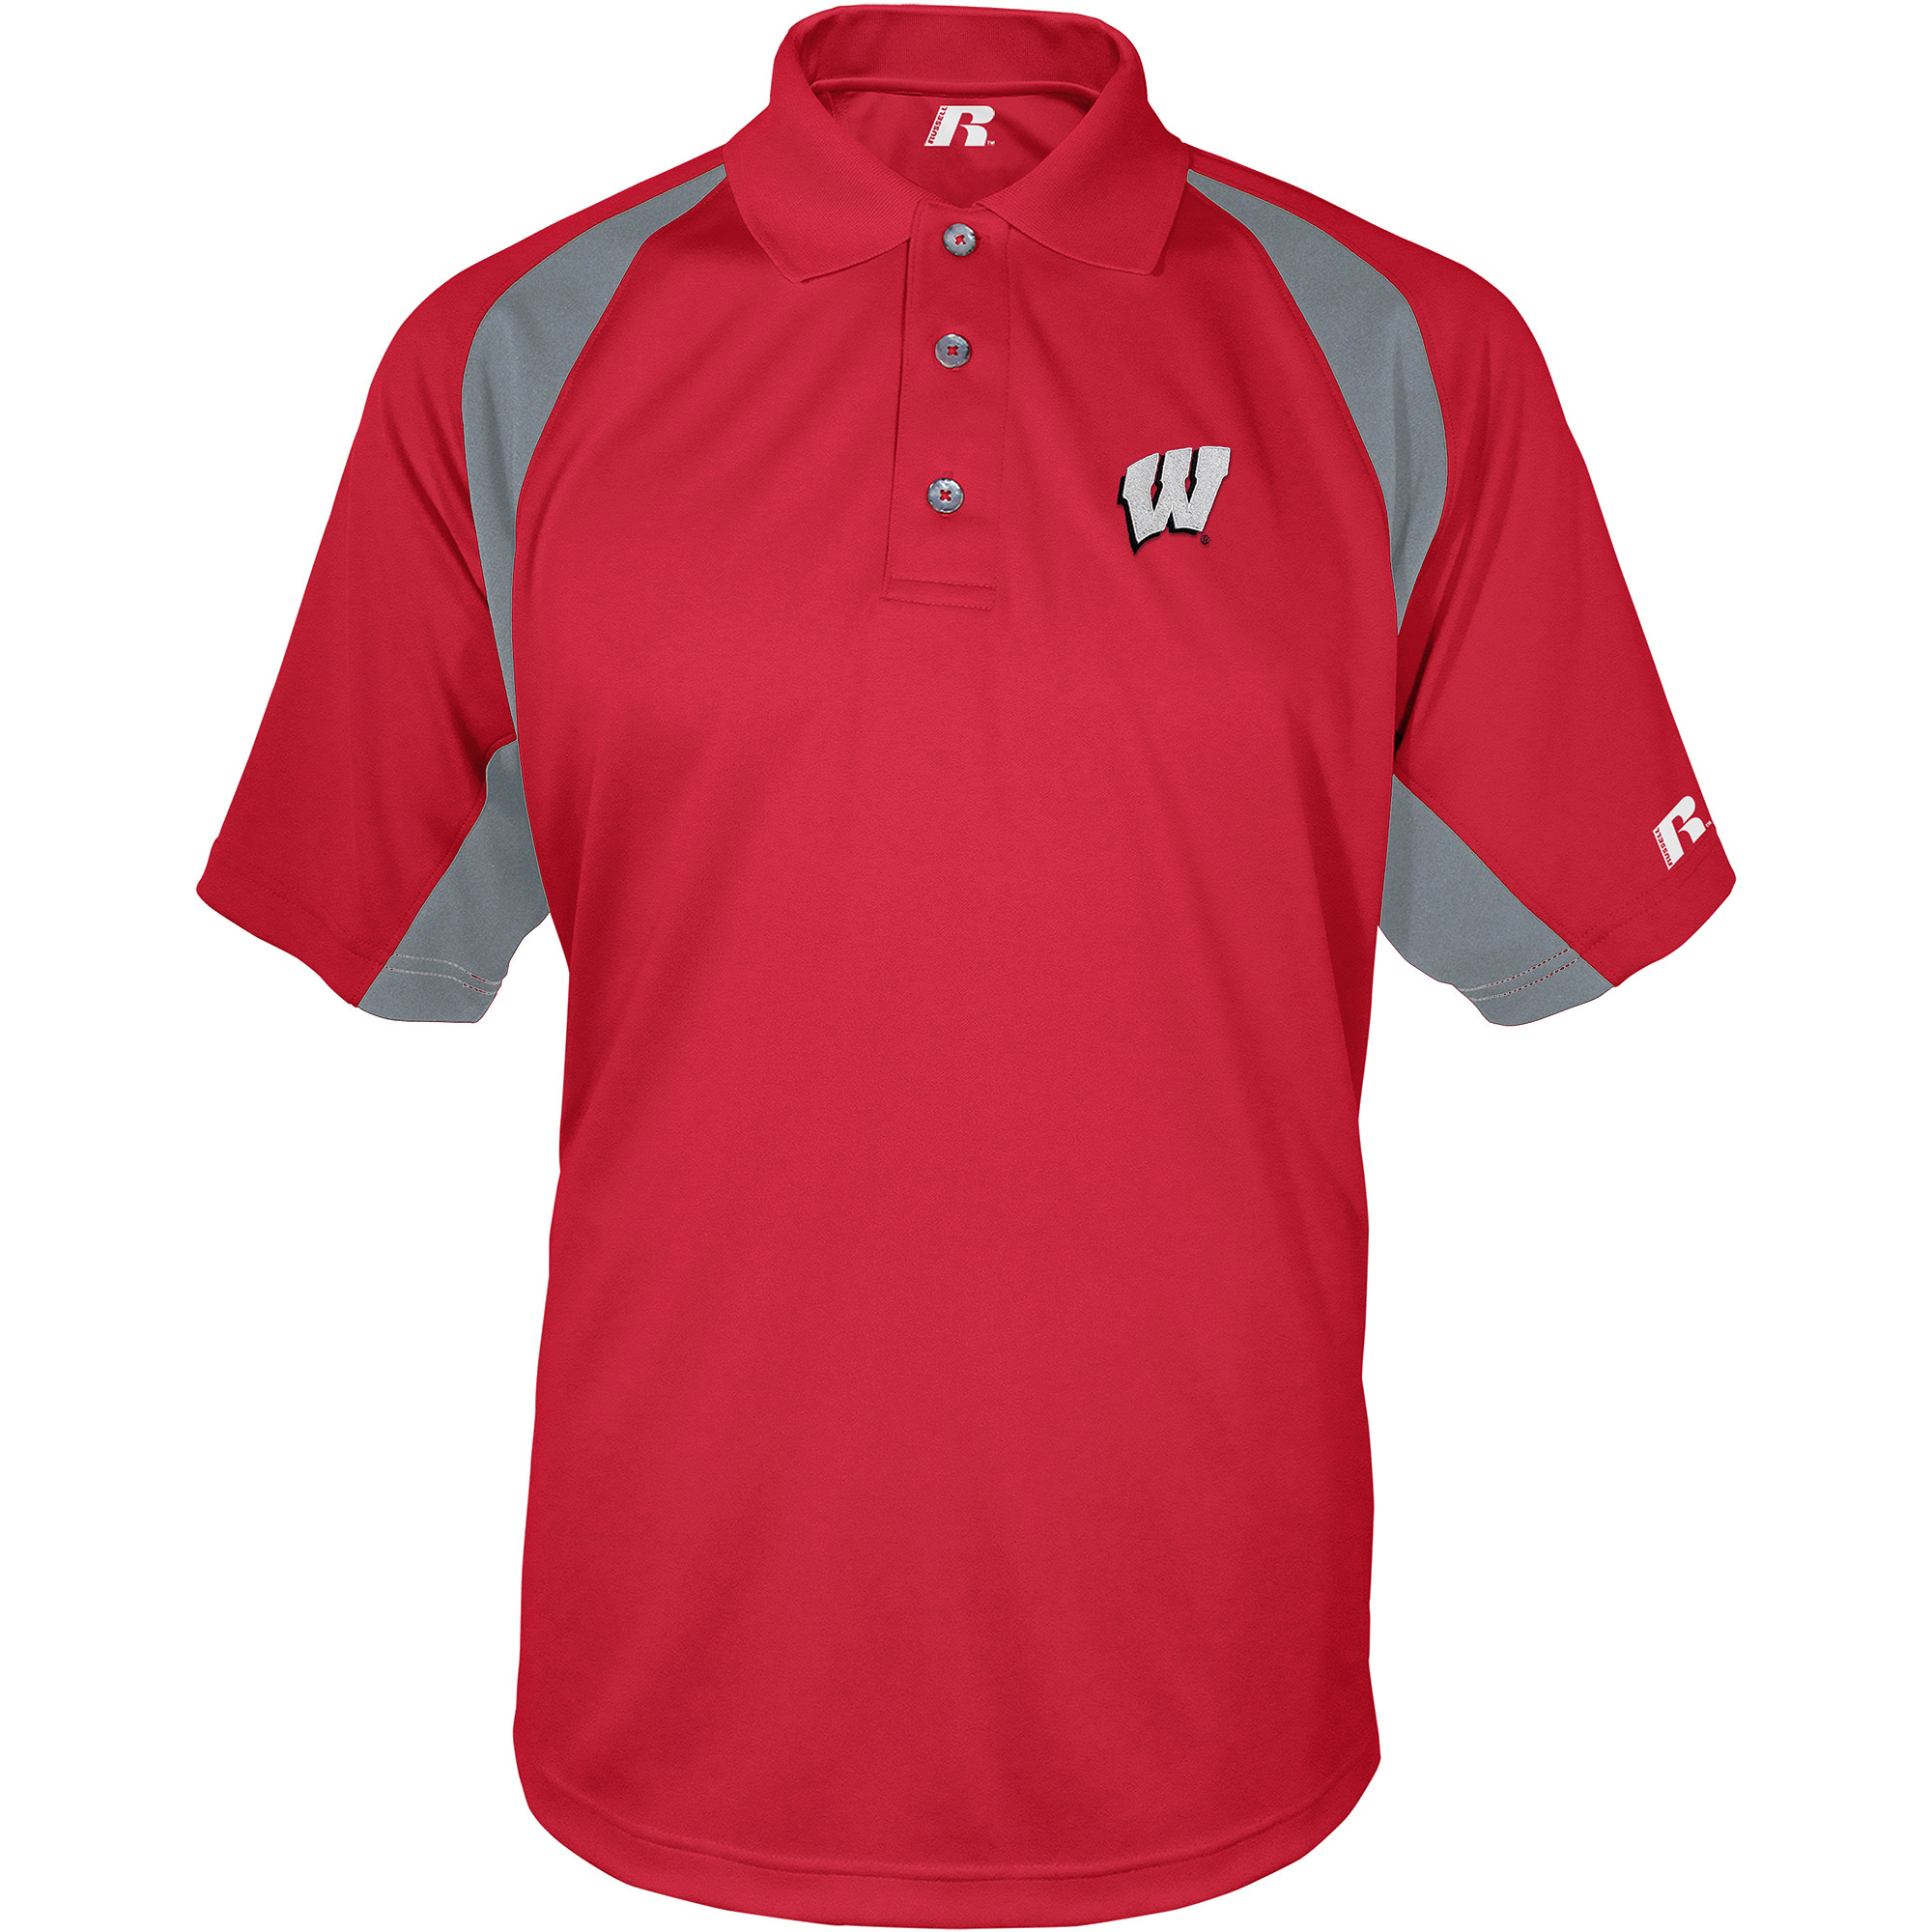 Russell NCAA Wisconsin Badgers, Men's Synthetic Polo